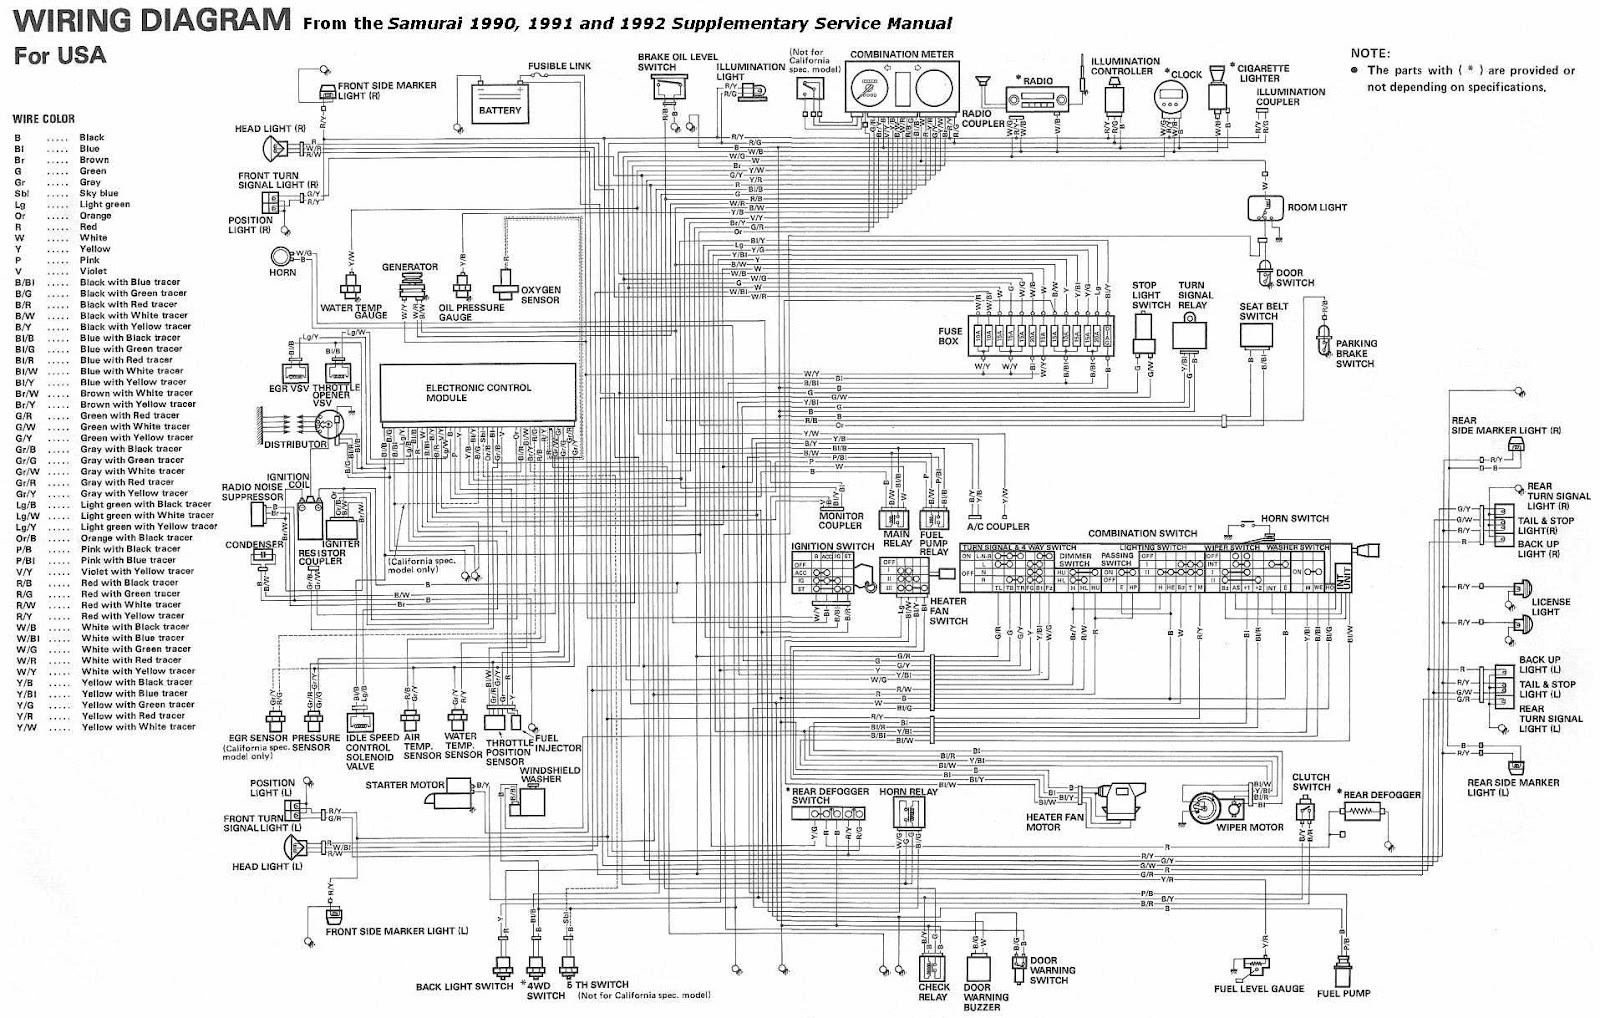 wiring diagram a parallel box mod jeep wiring mods e1 wiring diagram  jeep wiring mods e1 wiring diagram